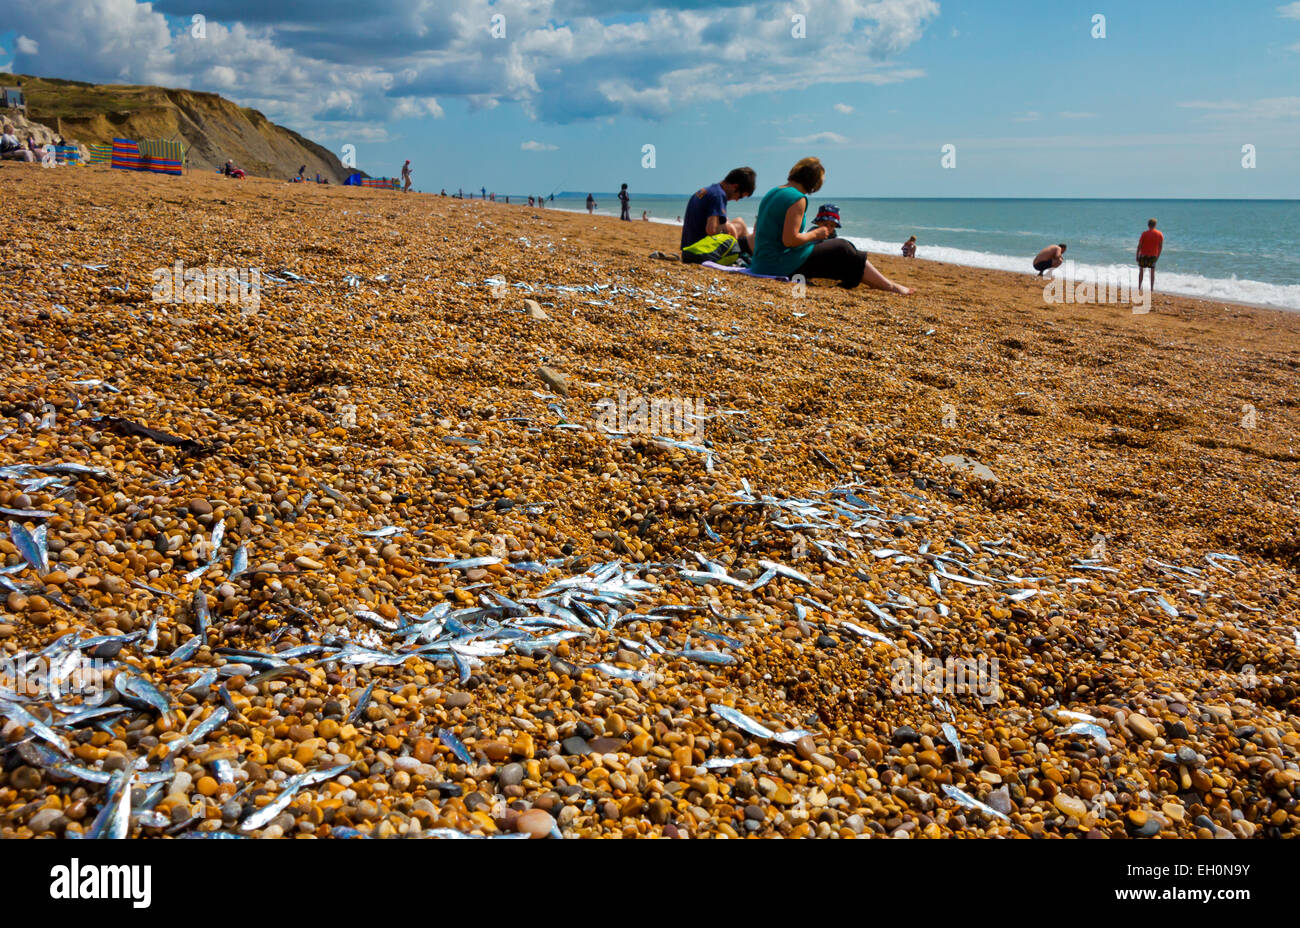 Whitebait stranded on a beach at Burton Bradstock Dorset England UK the fish are believed to have been herded there - Stock Image